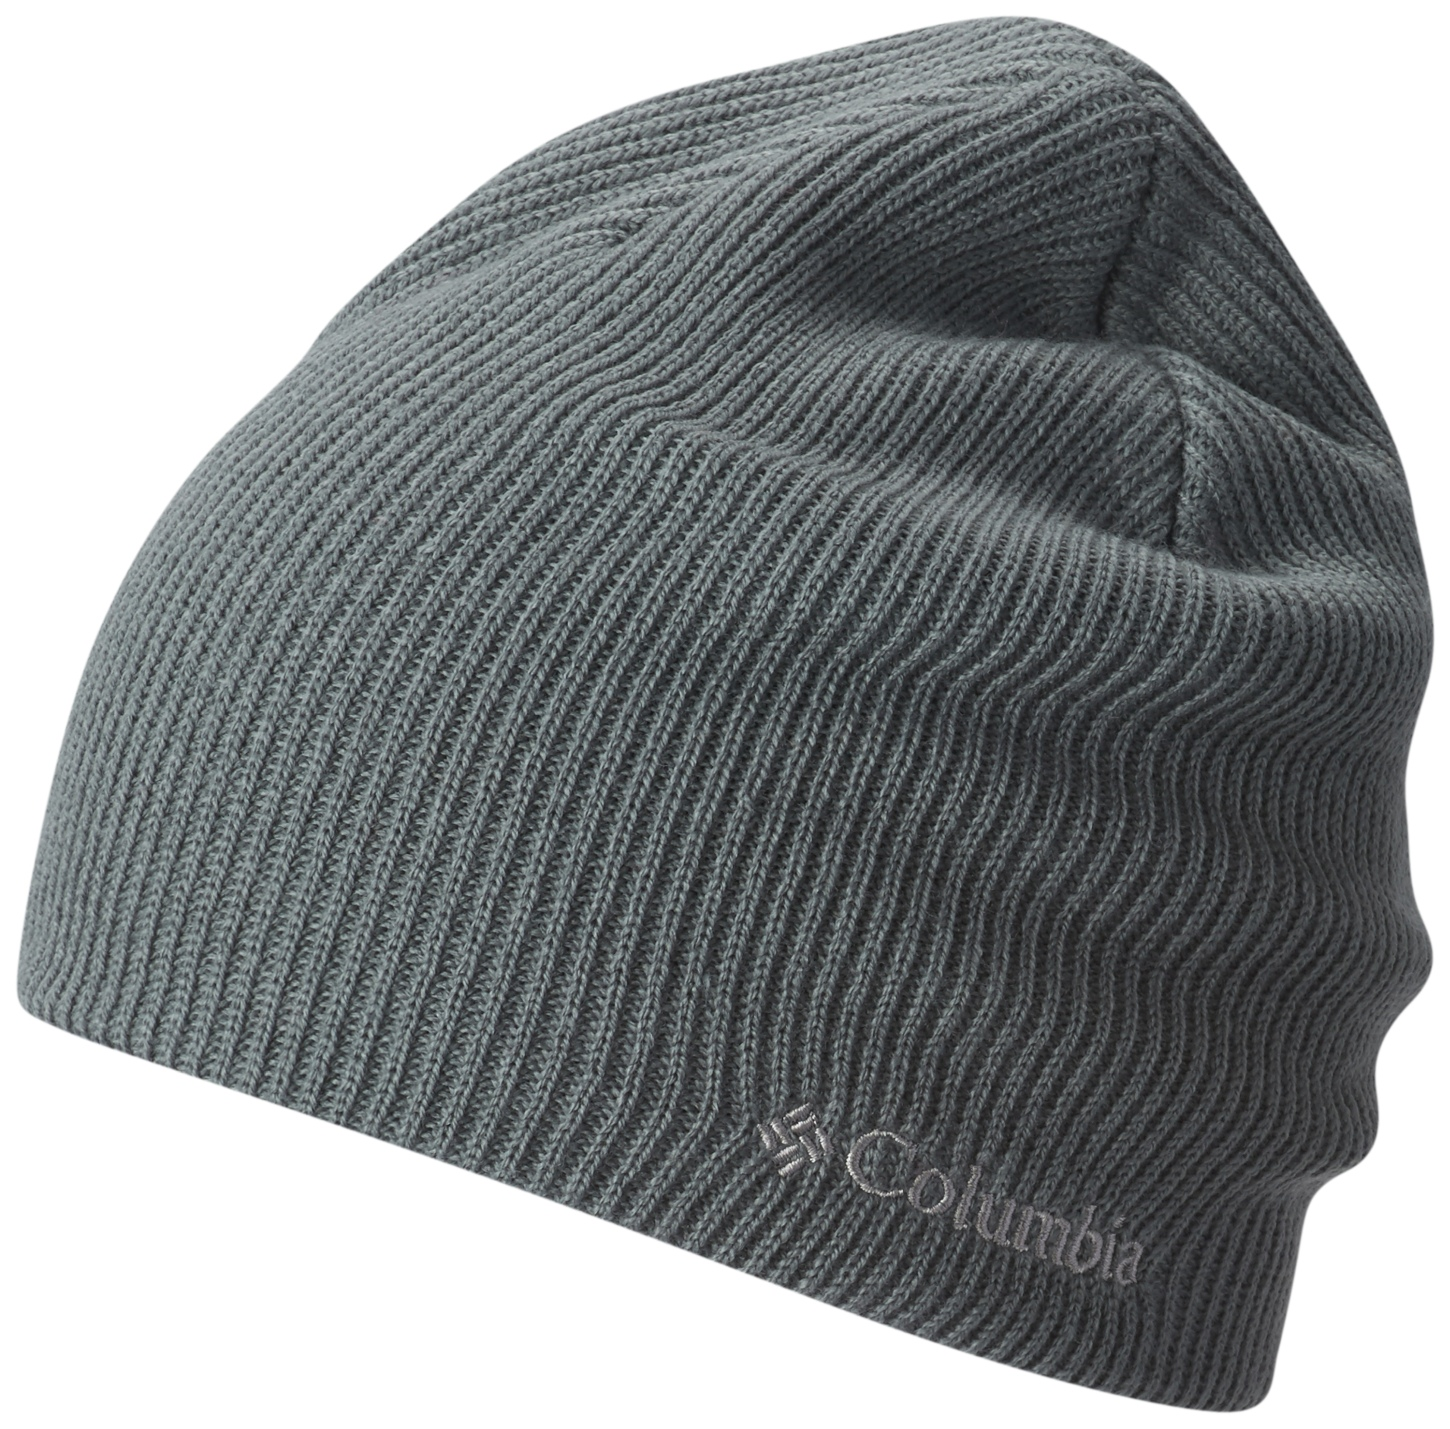 Columbia Whirlibird Watch Cap Beanie Pond-30